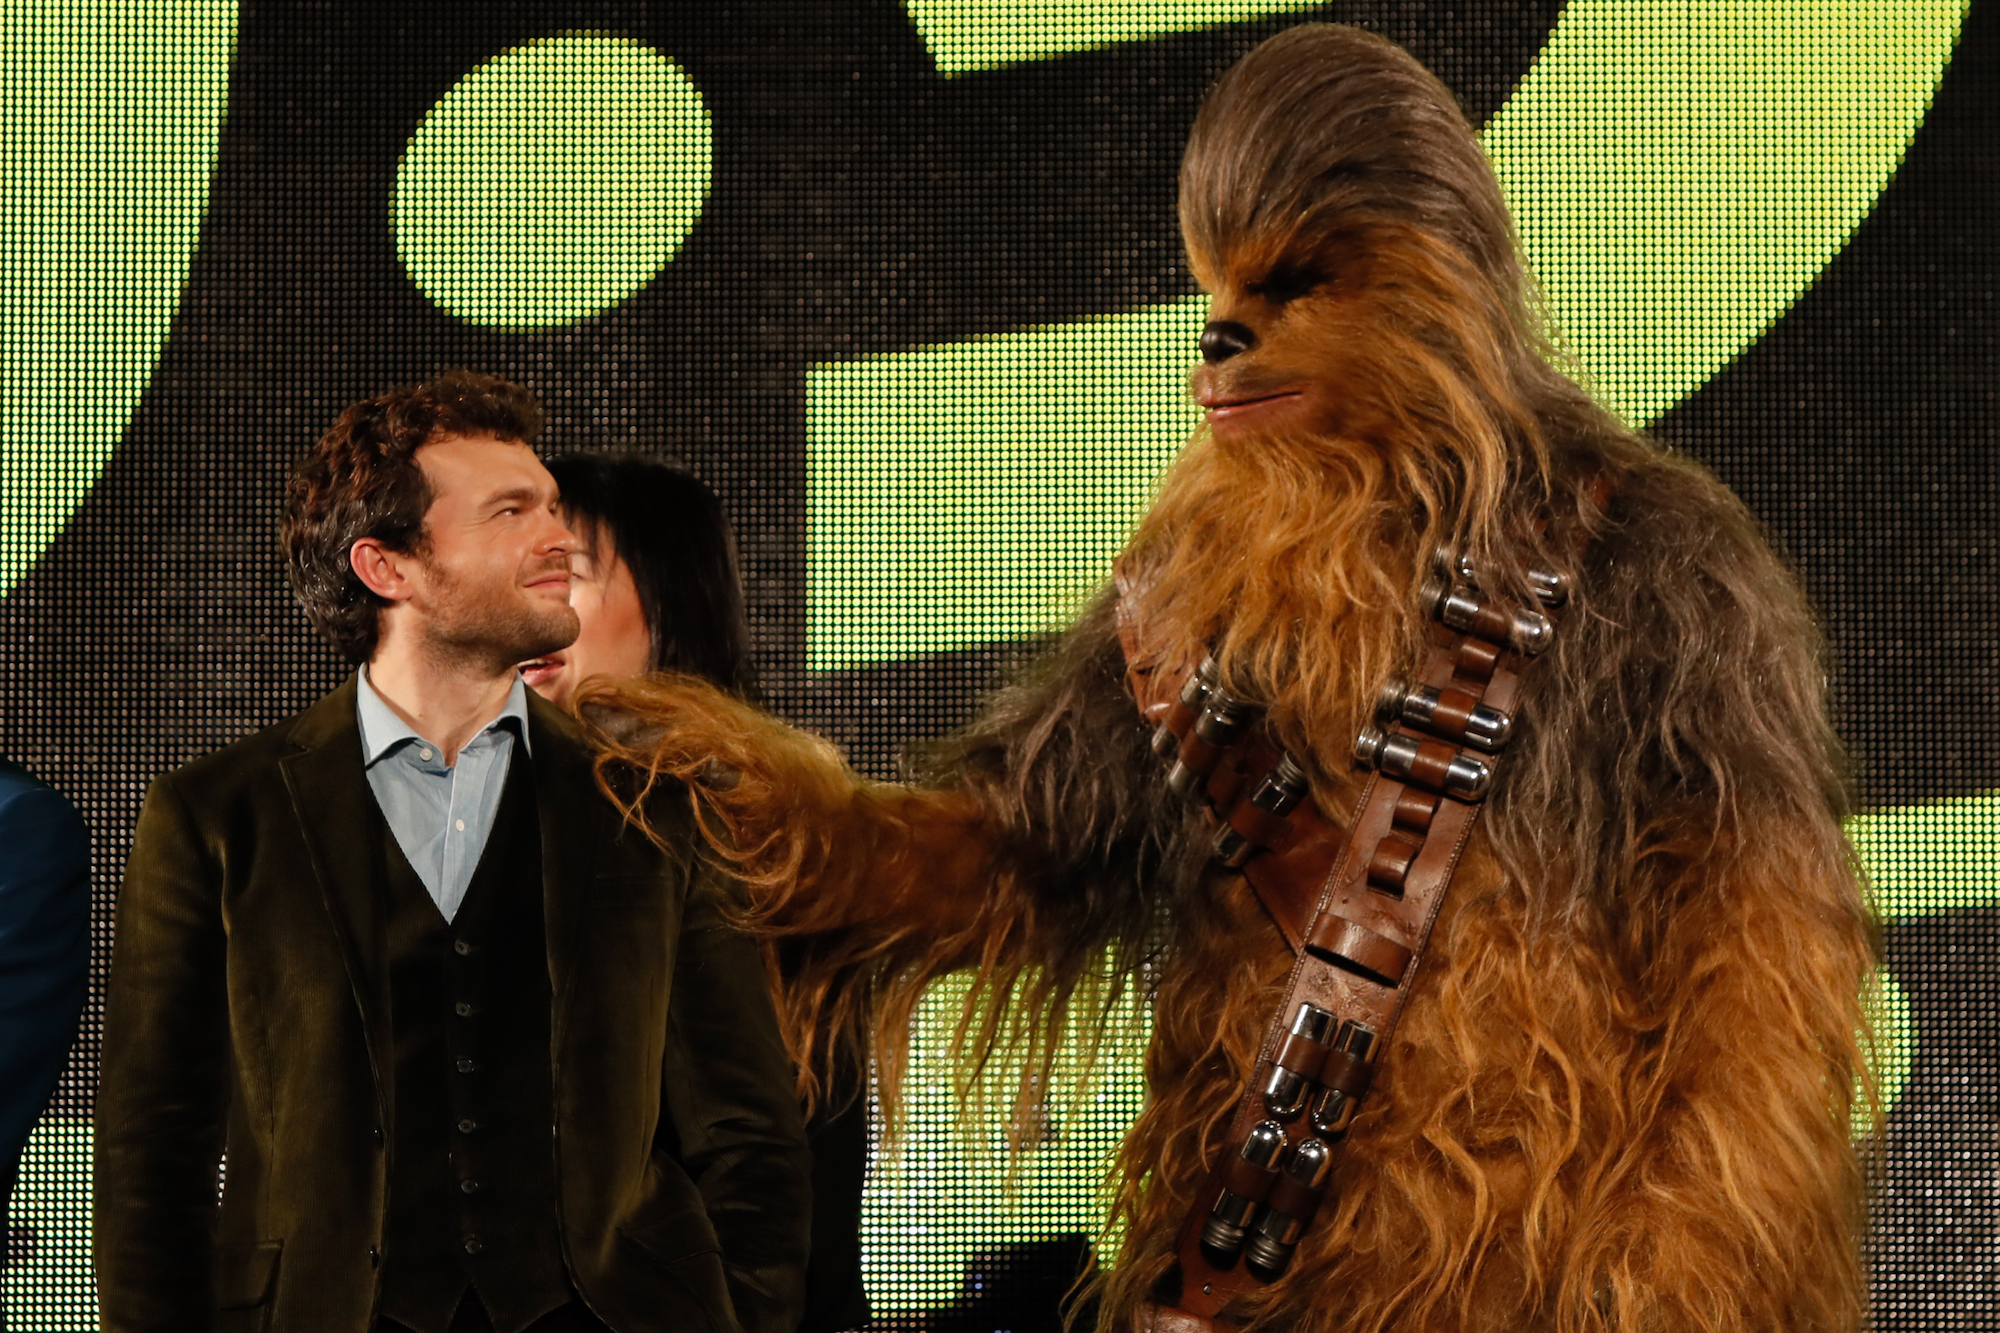 Alden Ehrenreich Has Read Some 'Star Wars' News 'But Almost nothing Concrete,' Could There Be a 'Solo' Sequel?